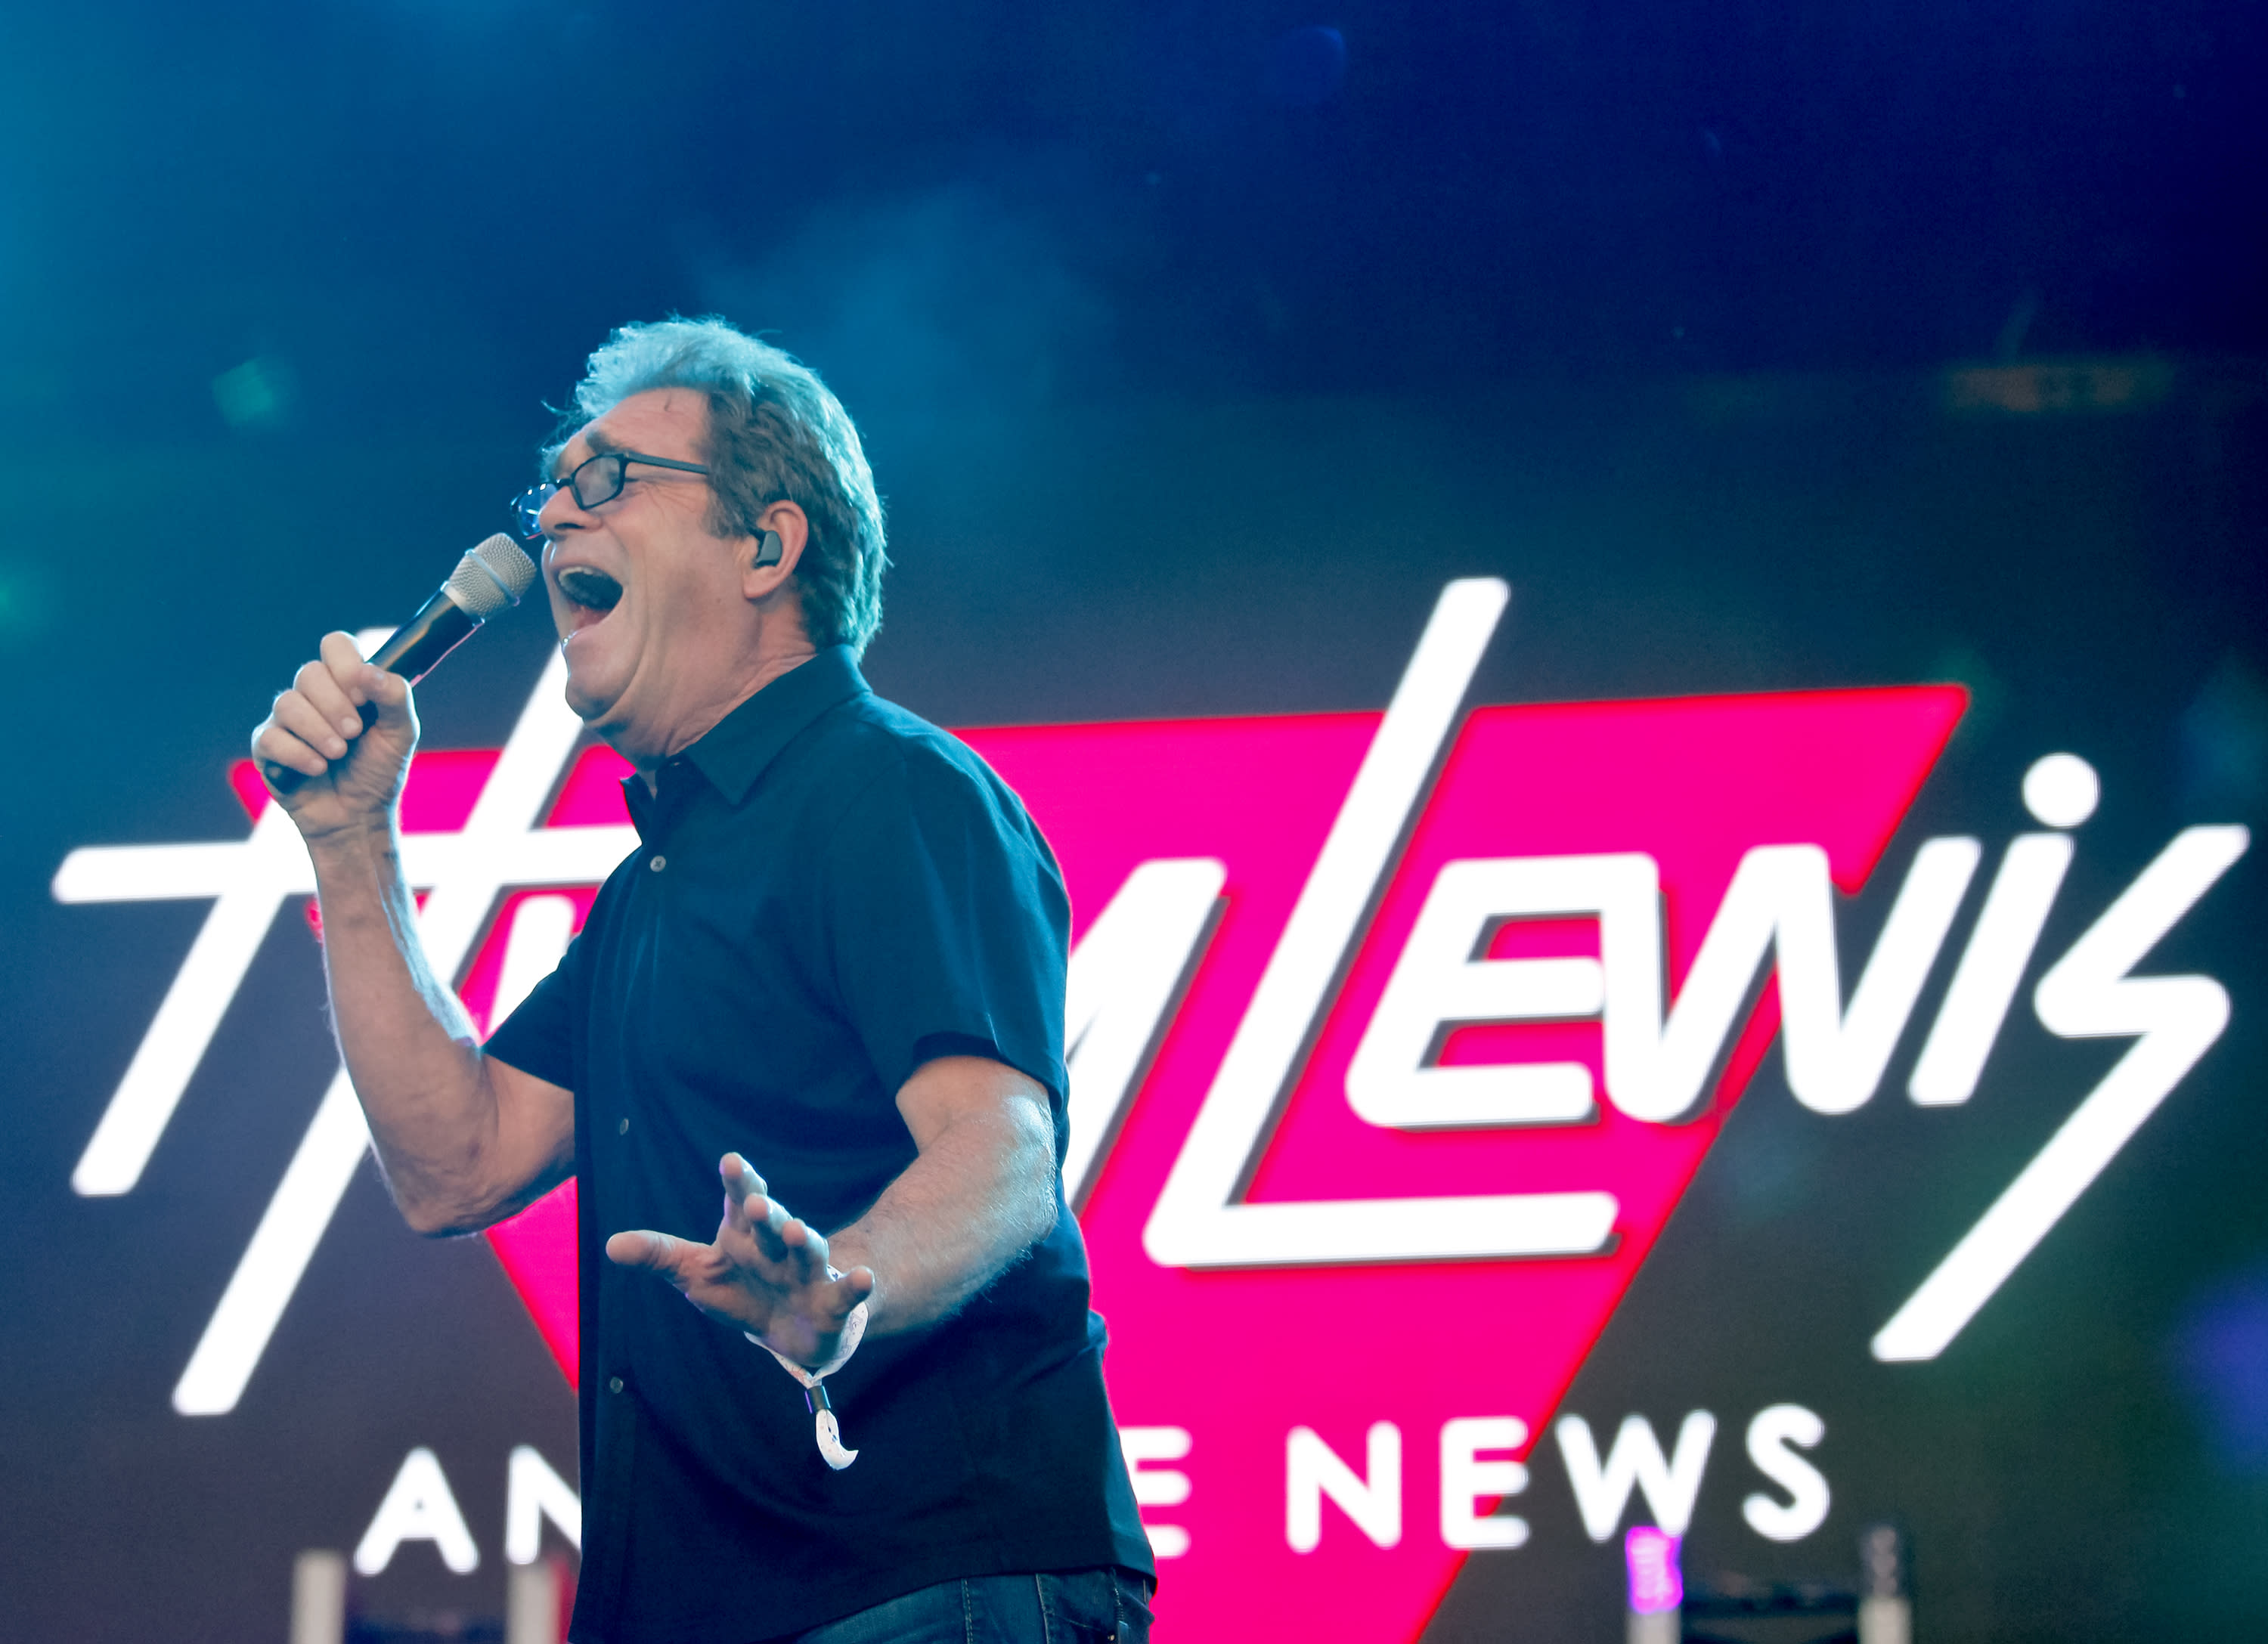 Huey Lewis (pictured in 2017) can no longer perform due to hearing loss caused by Meniere's disease. (Photo: Tibrina Hobson/Getty Images)